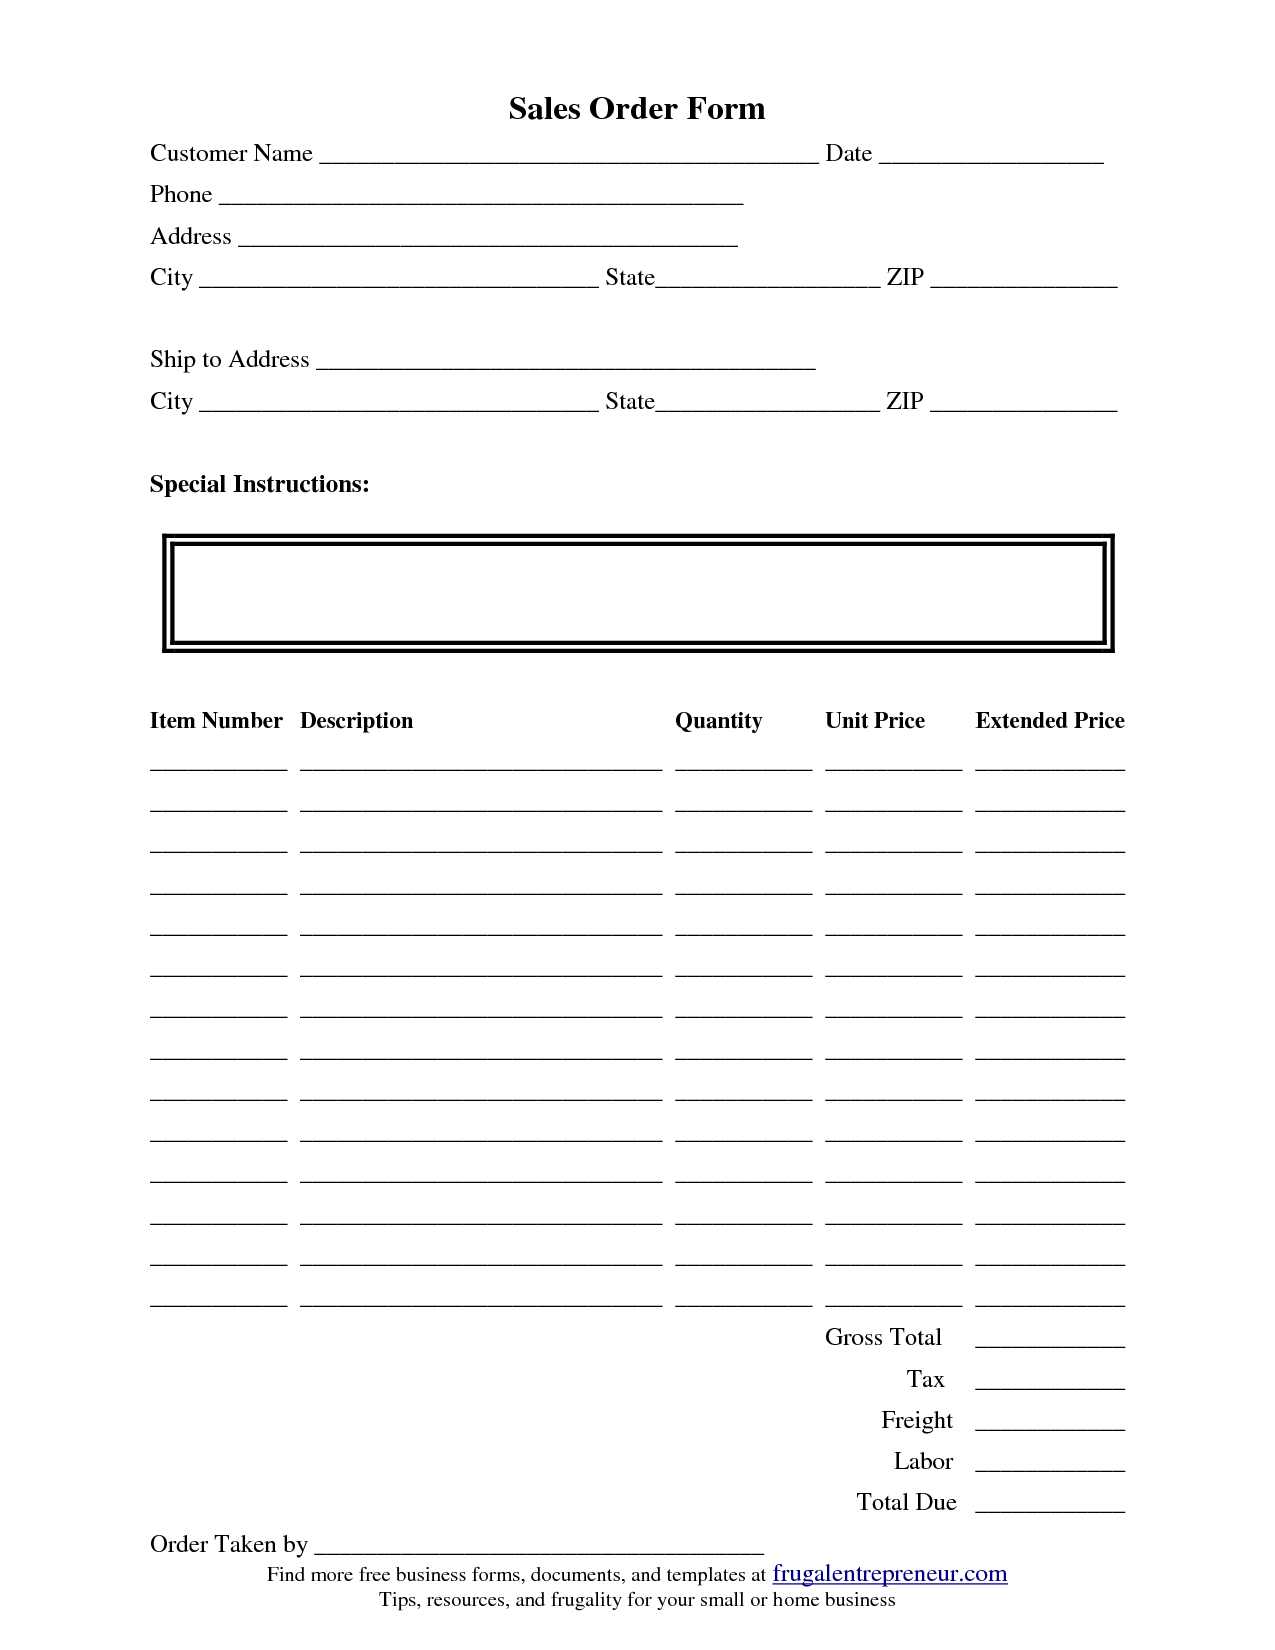 Need Templates For Order Forms An Efficient Way To Collect Orders Jotforms  Free Order Form Templates  Microsoft Work Order Template